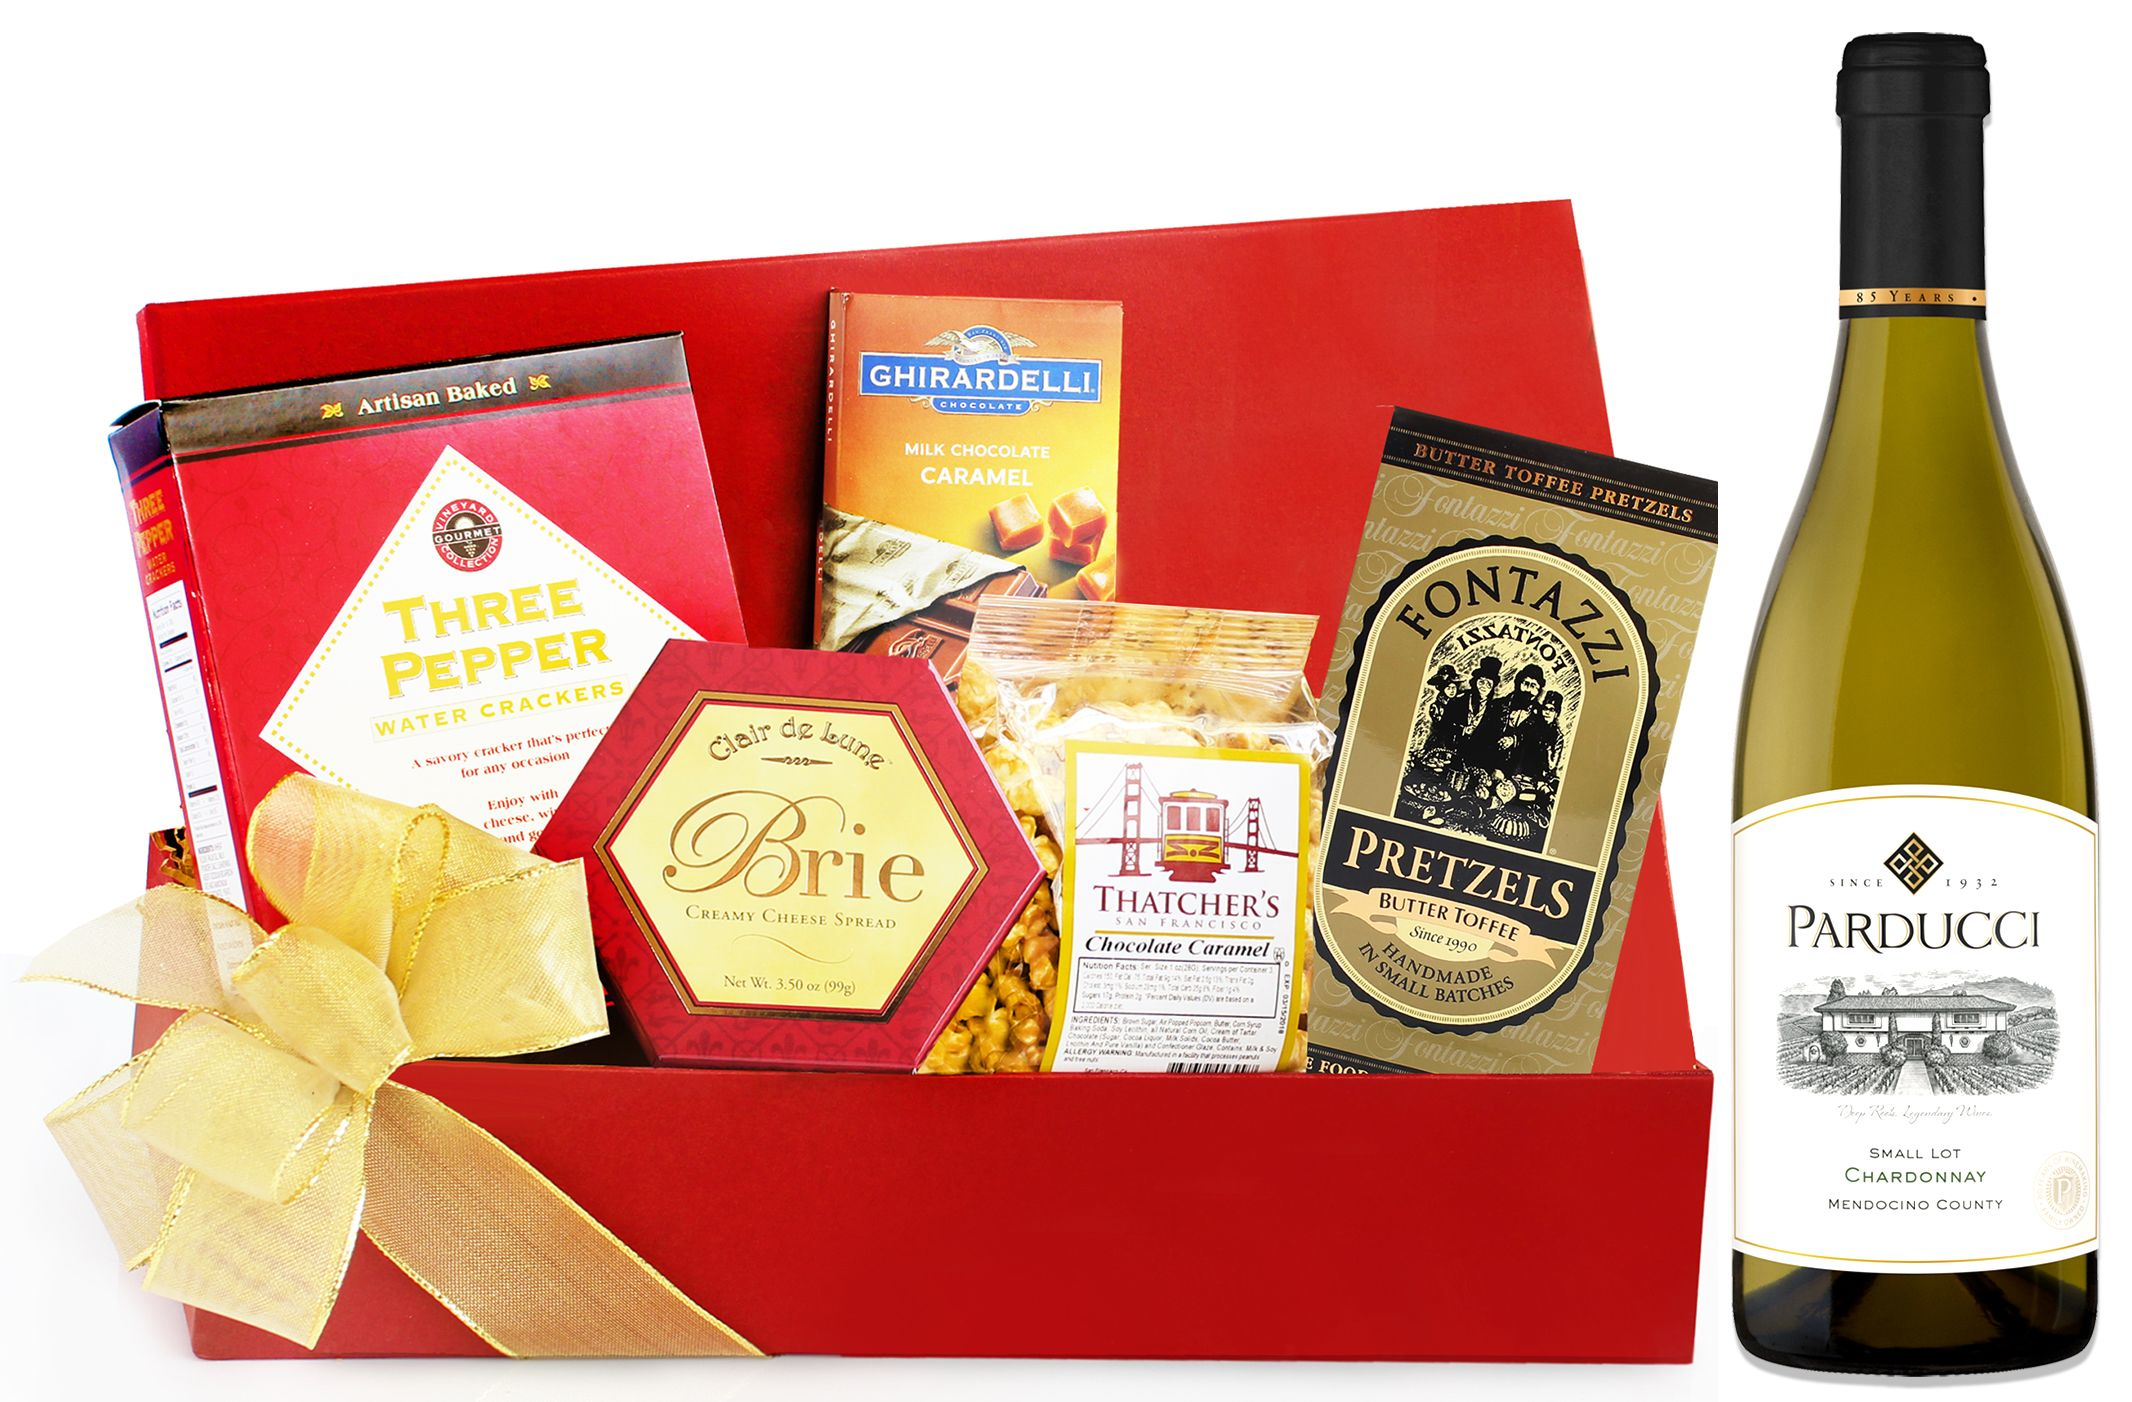 wine.com Parducci Chardonnay & Tempting Treats Gift Basket  Gift Product Image